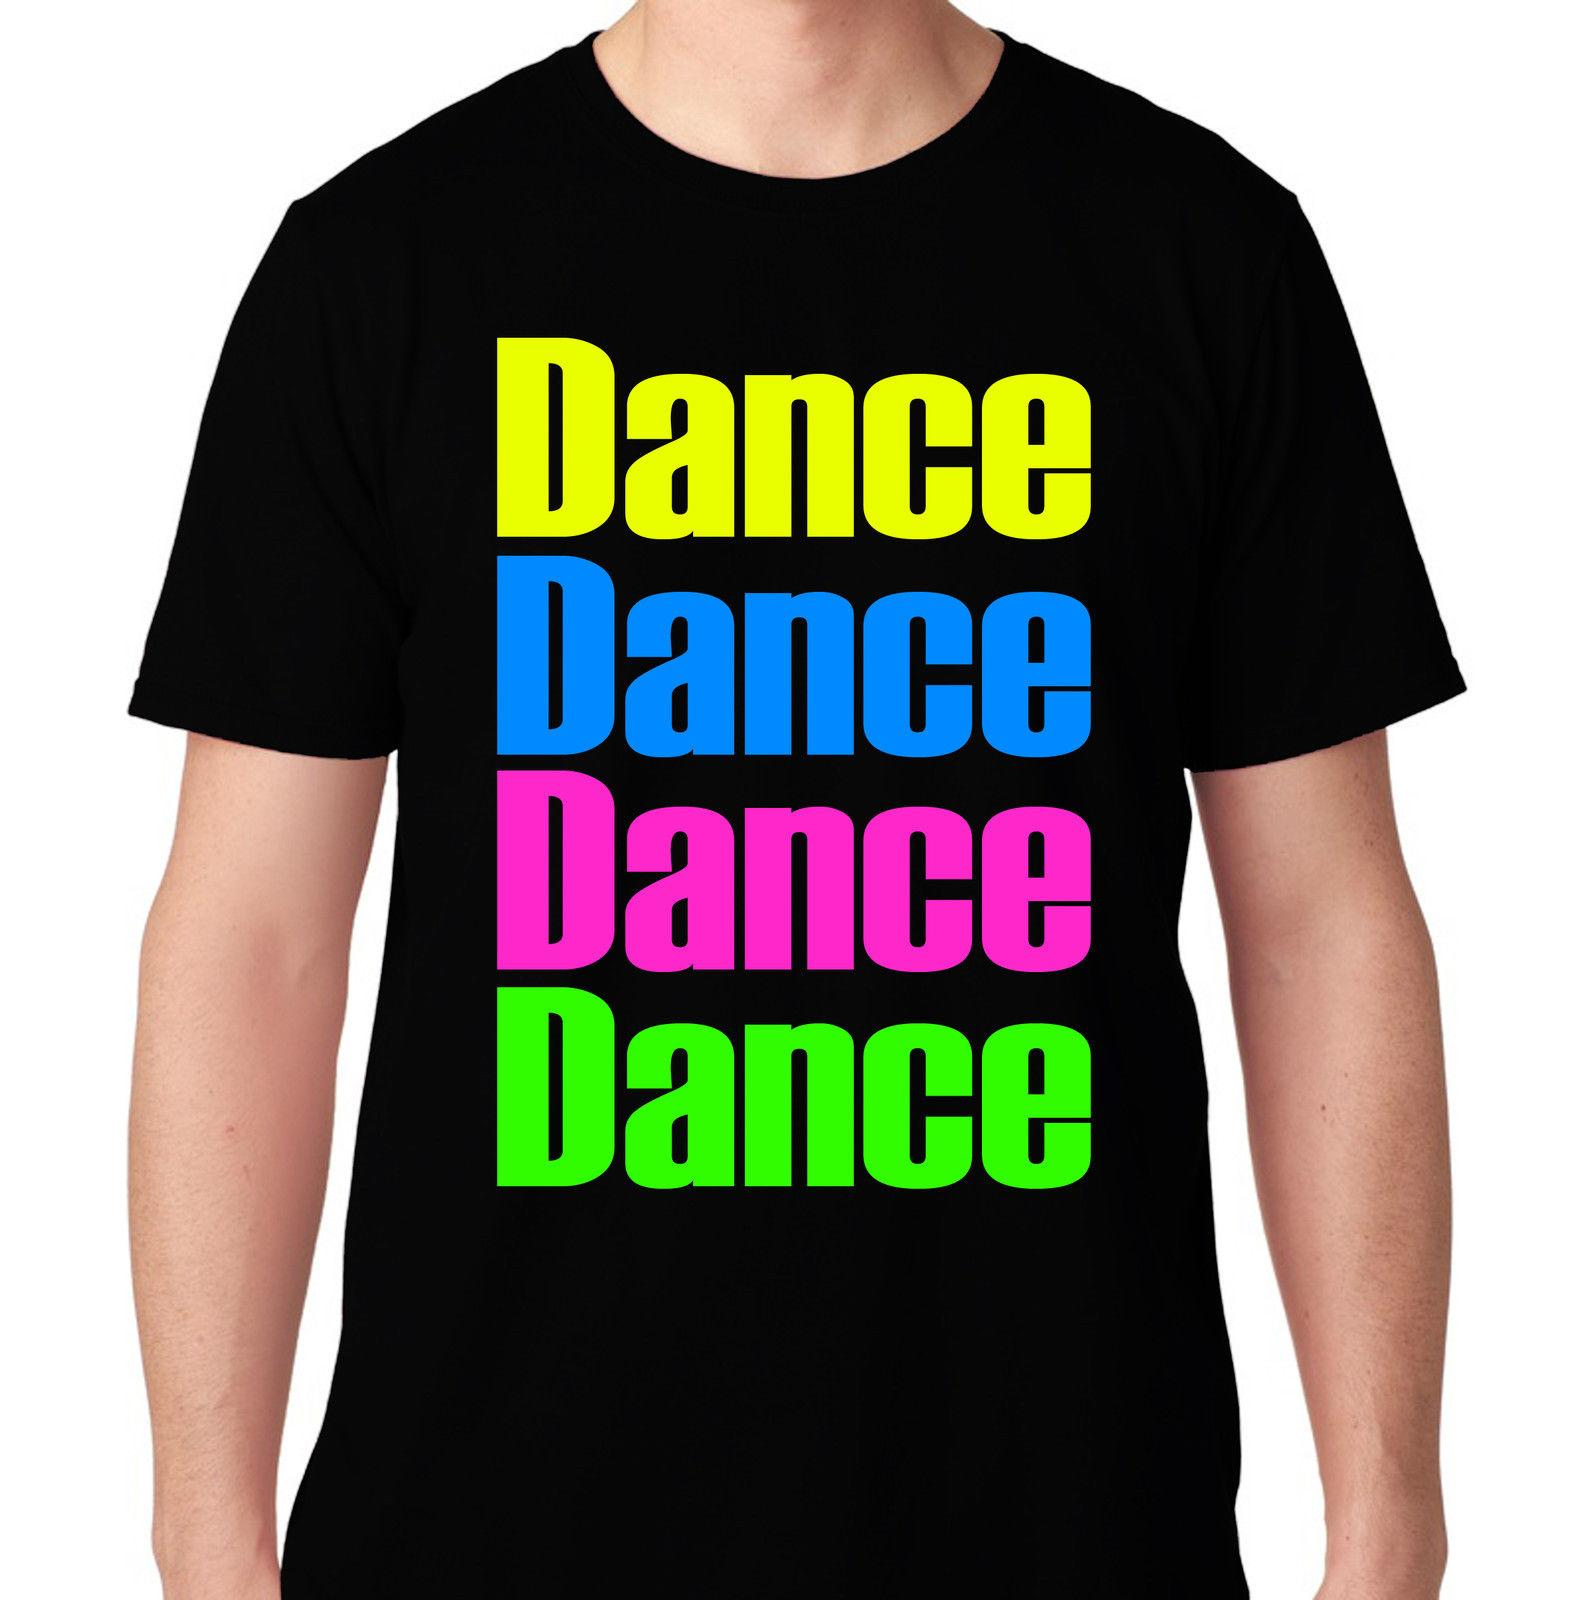 DANCE DANCE BASS EDM MUSIC HOUSE T SHIRT size discout hot new tshirt top  free shipping t-shirt funny 100% Cotton t shirt